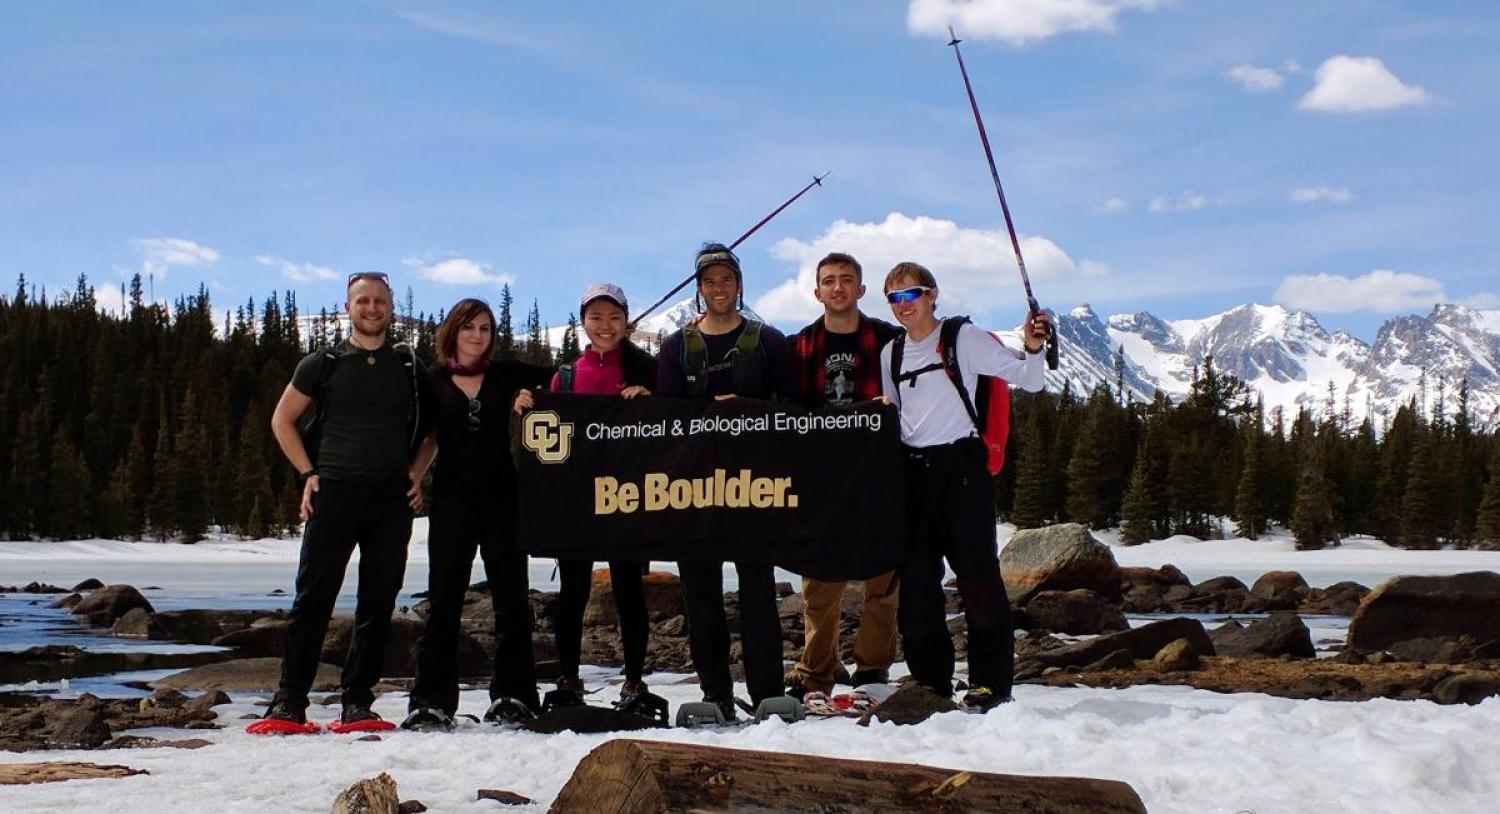 AIChE chapter members on a hiking trip with a CU Boulder banner